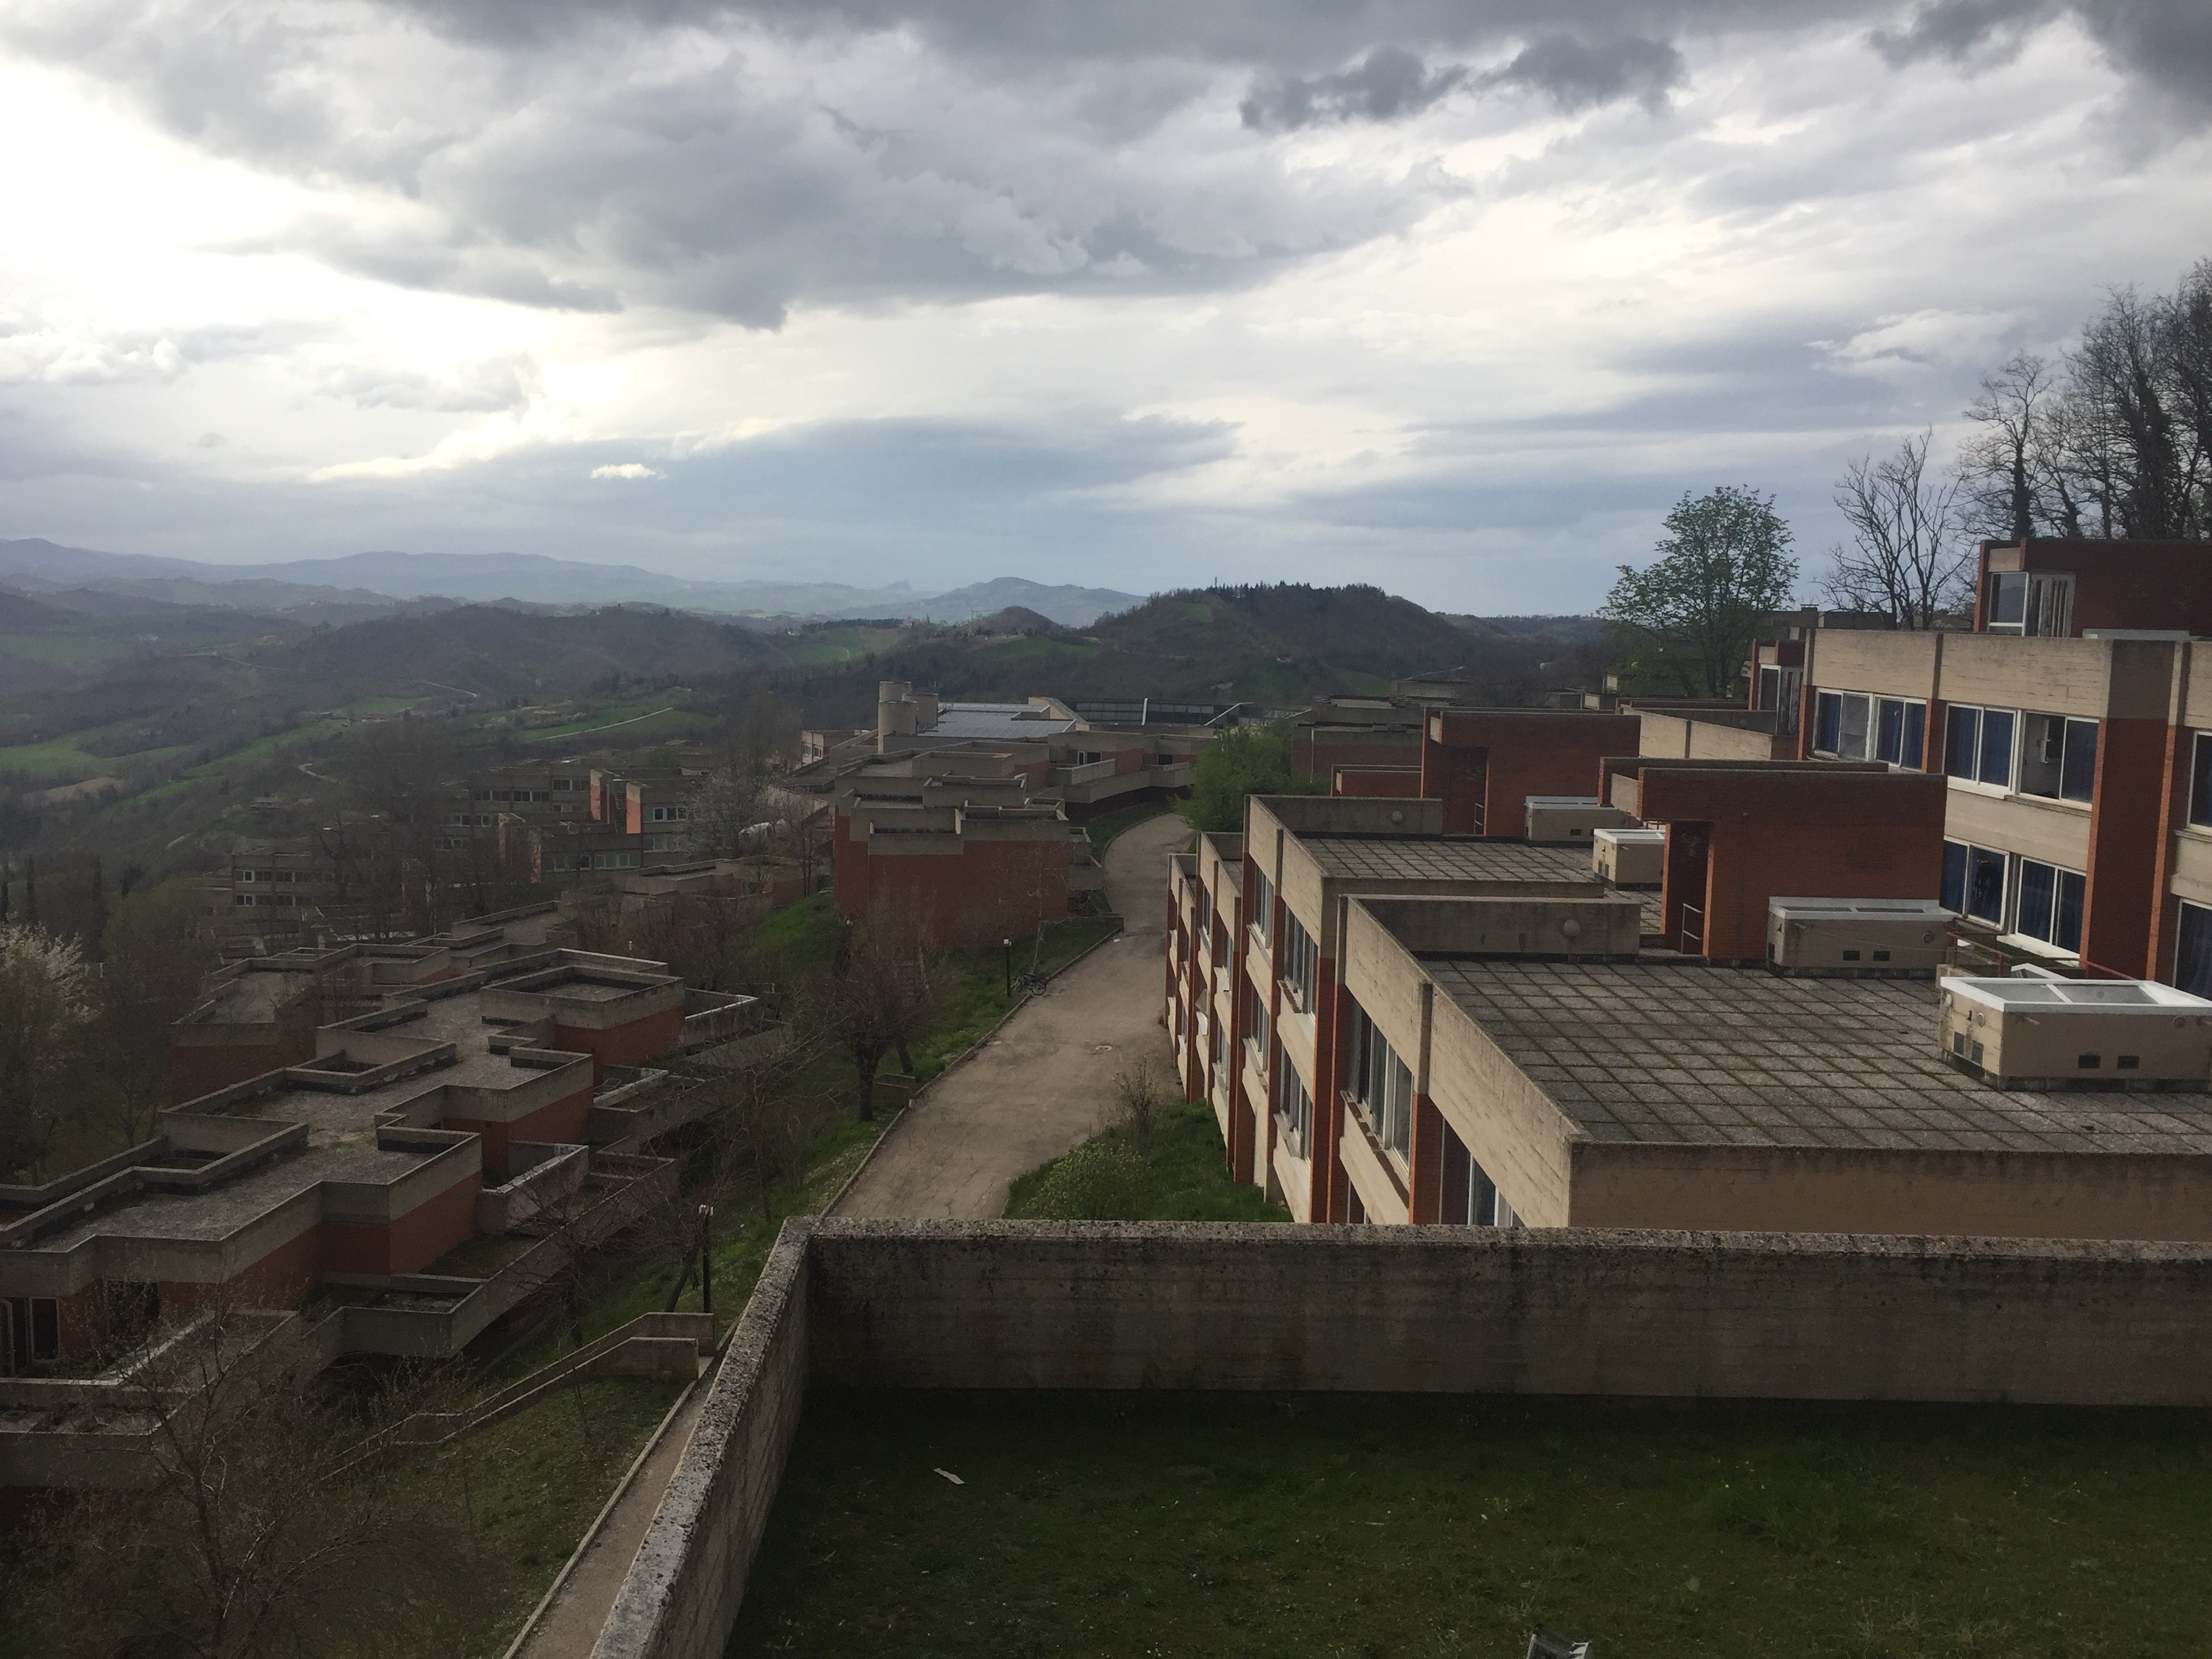 This view from the roof of Aquilone shows the main path students take to Tridente to eat at the mensa. Photo by Bridget Hepworth